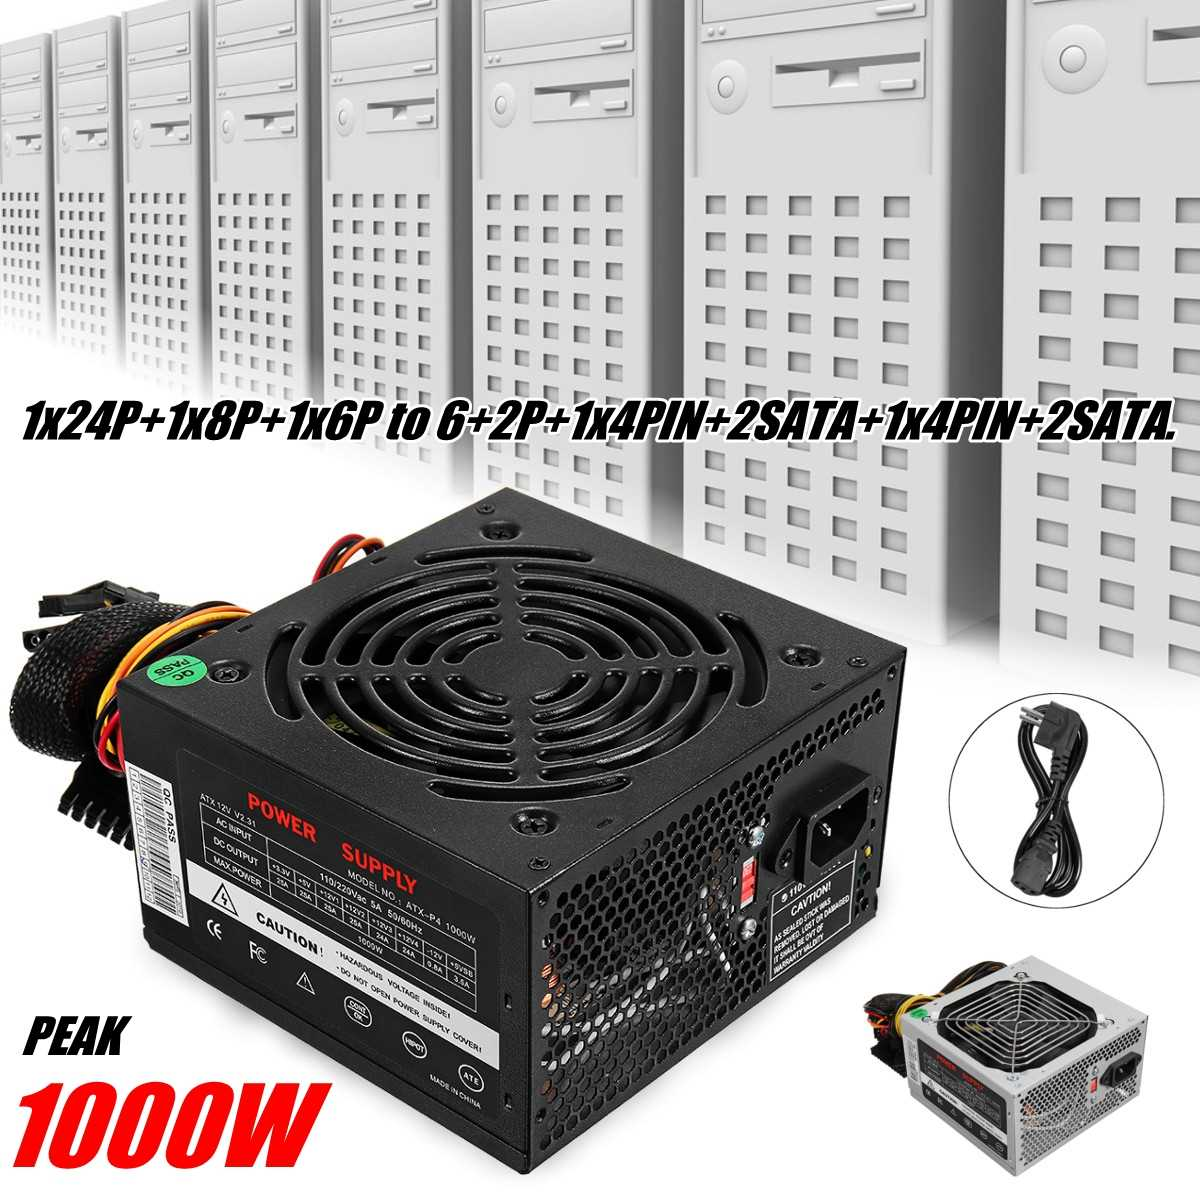 Max 1000W Power Supply PSU PFC Silent Fan ATX 24pin 12V Komputer PC SATA PC Gaming Power Supply untuk Intel Amd Komputer